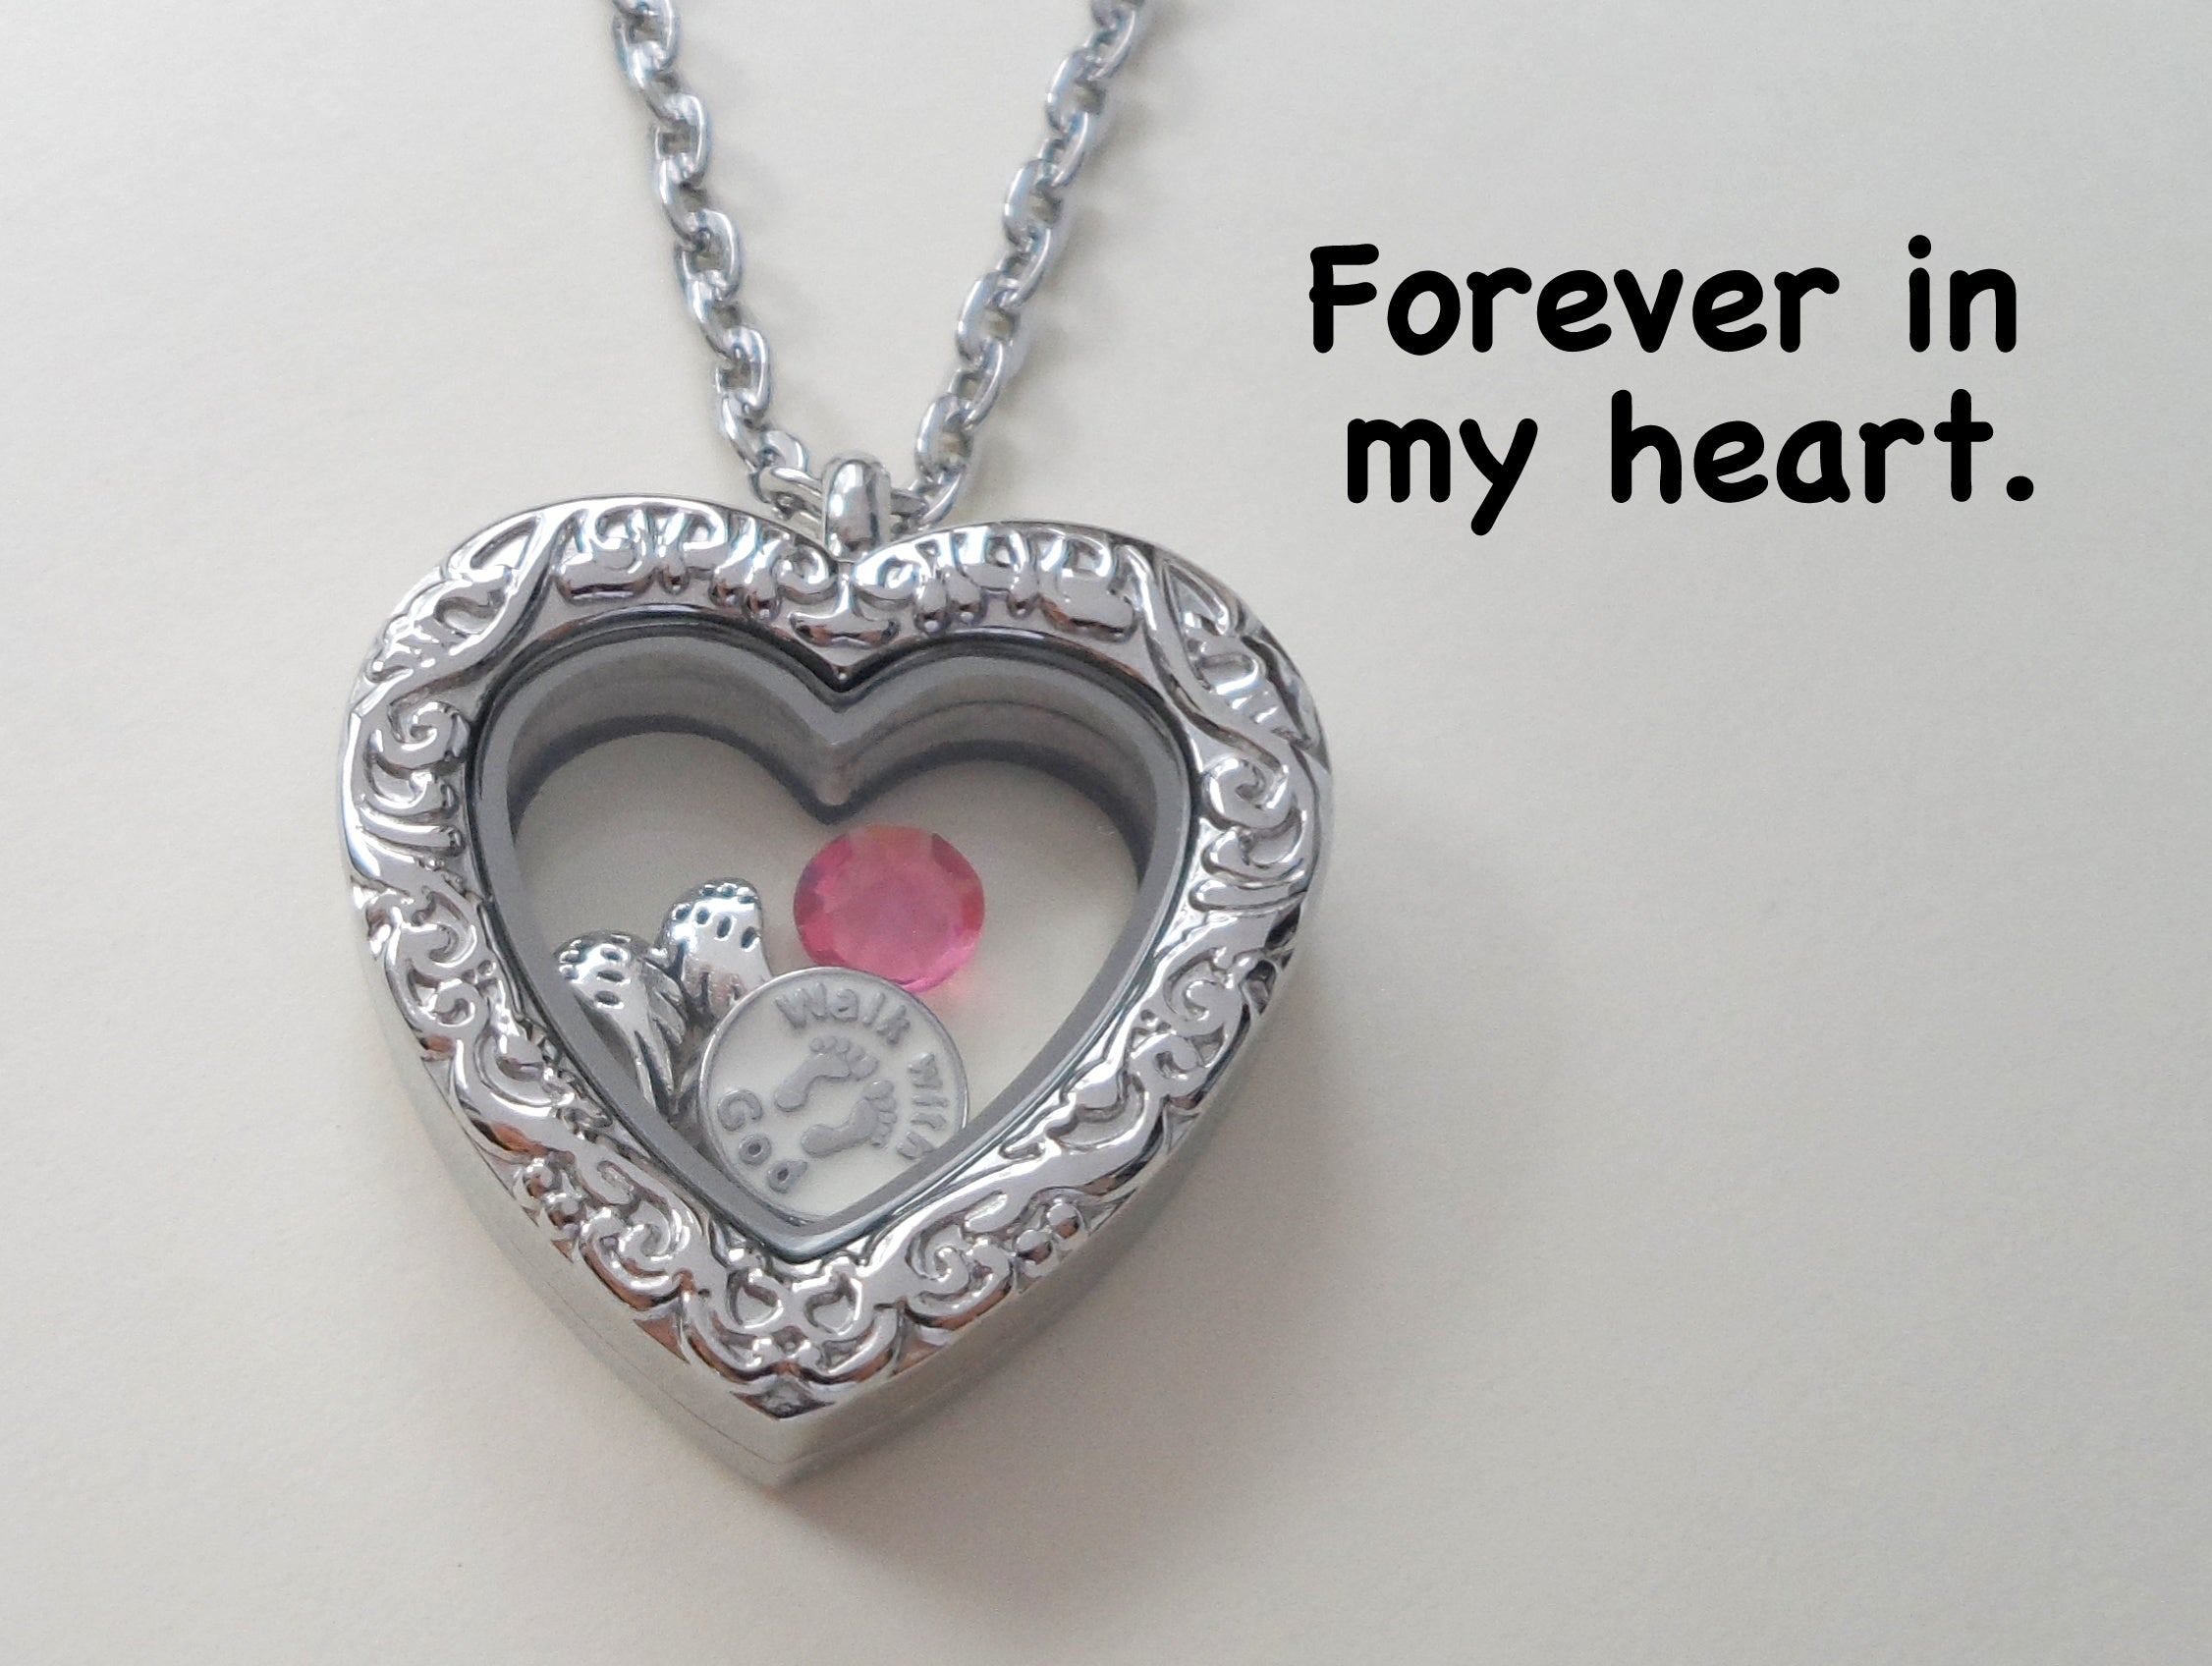 shop cremation white gold diamond necklace memorial jewelry heart urn pendant copy